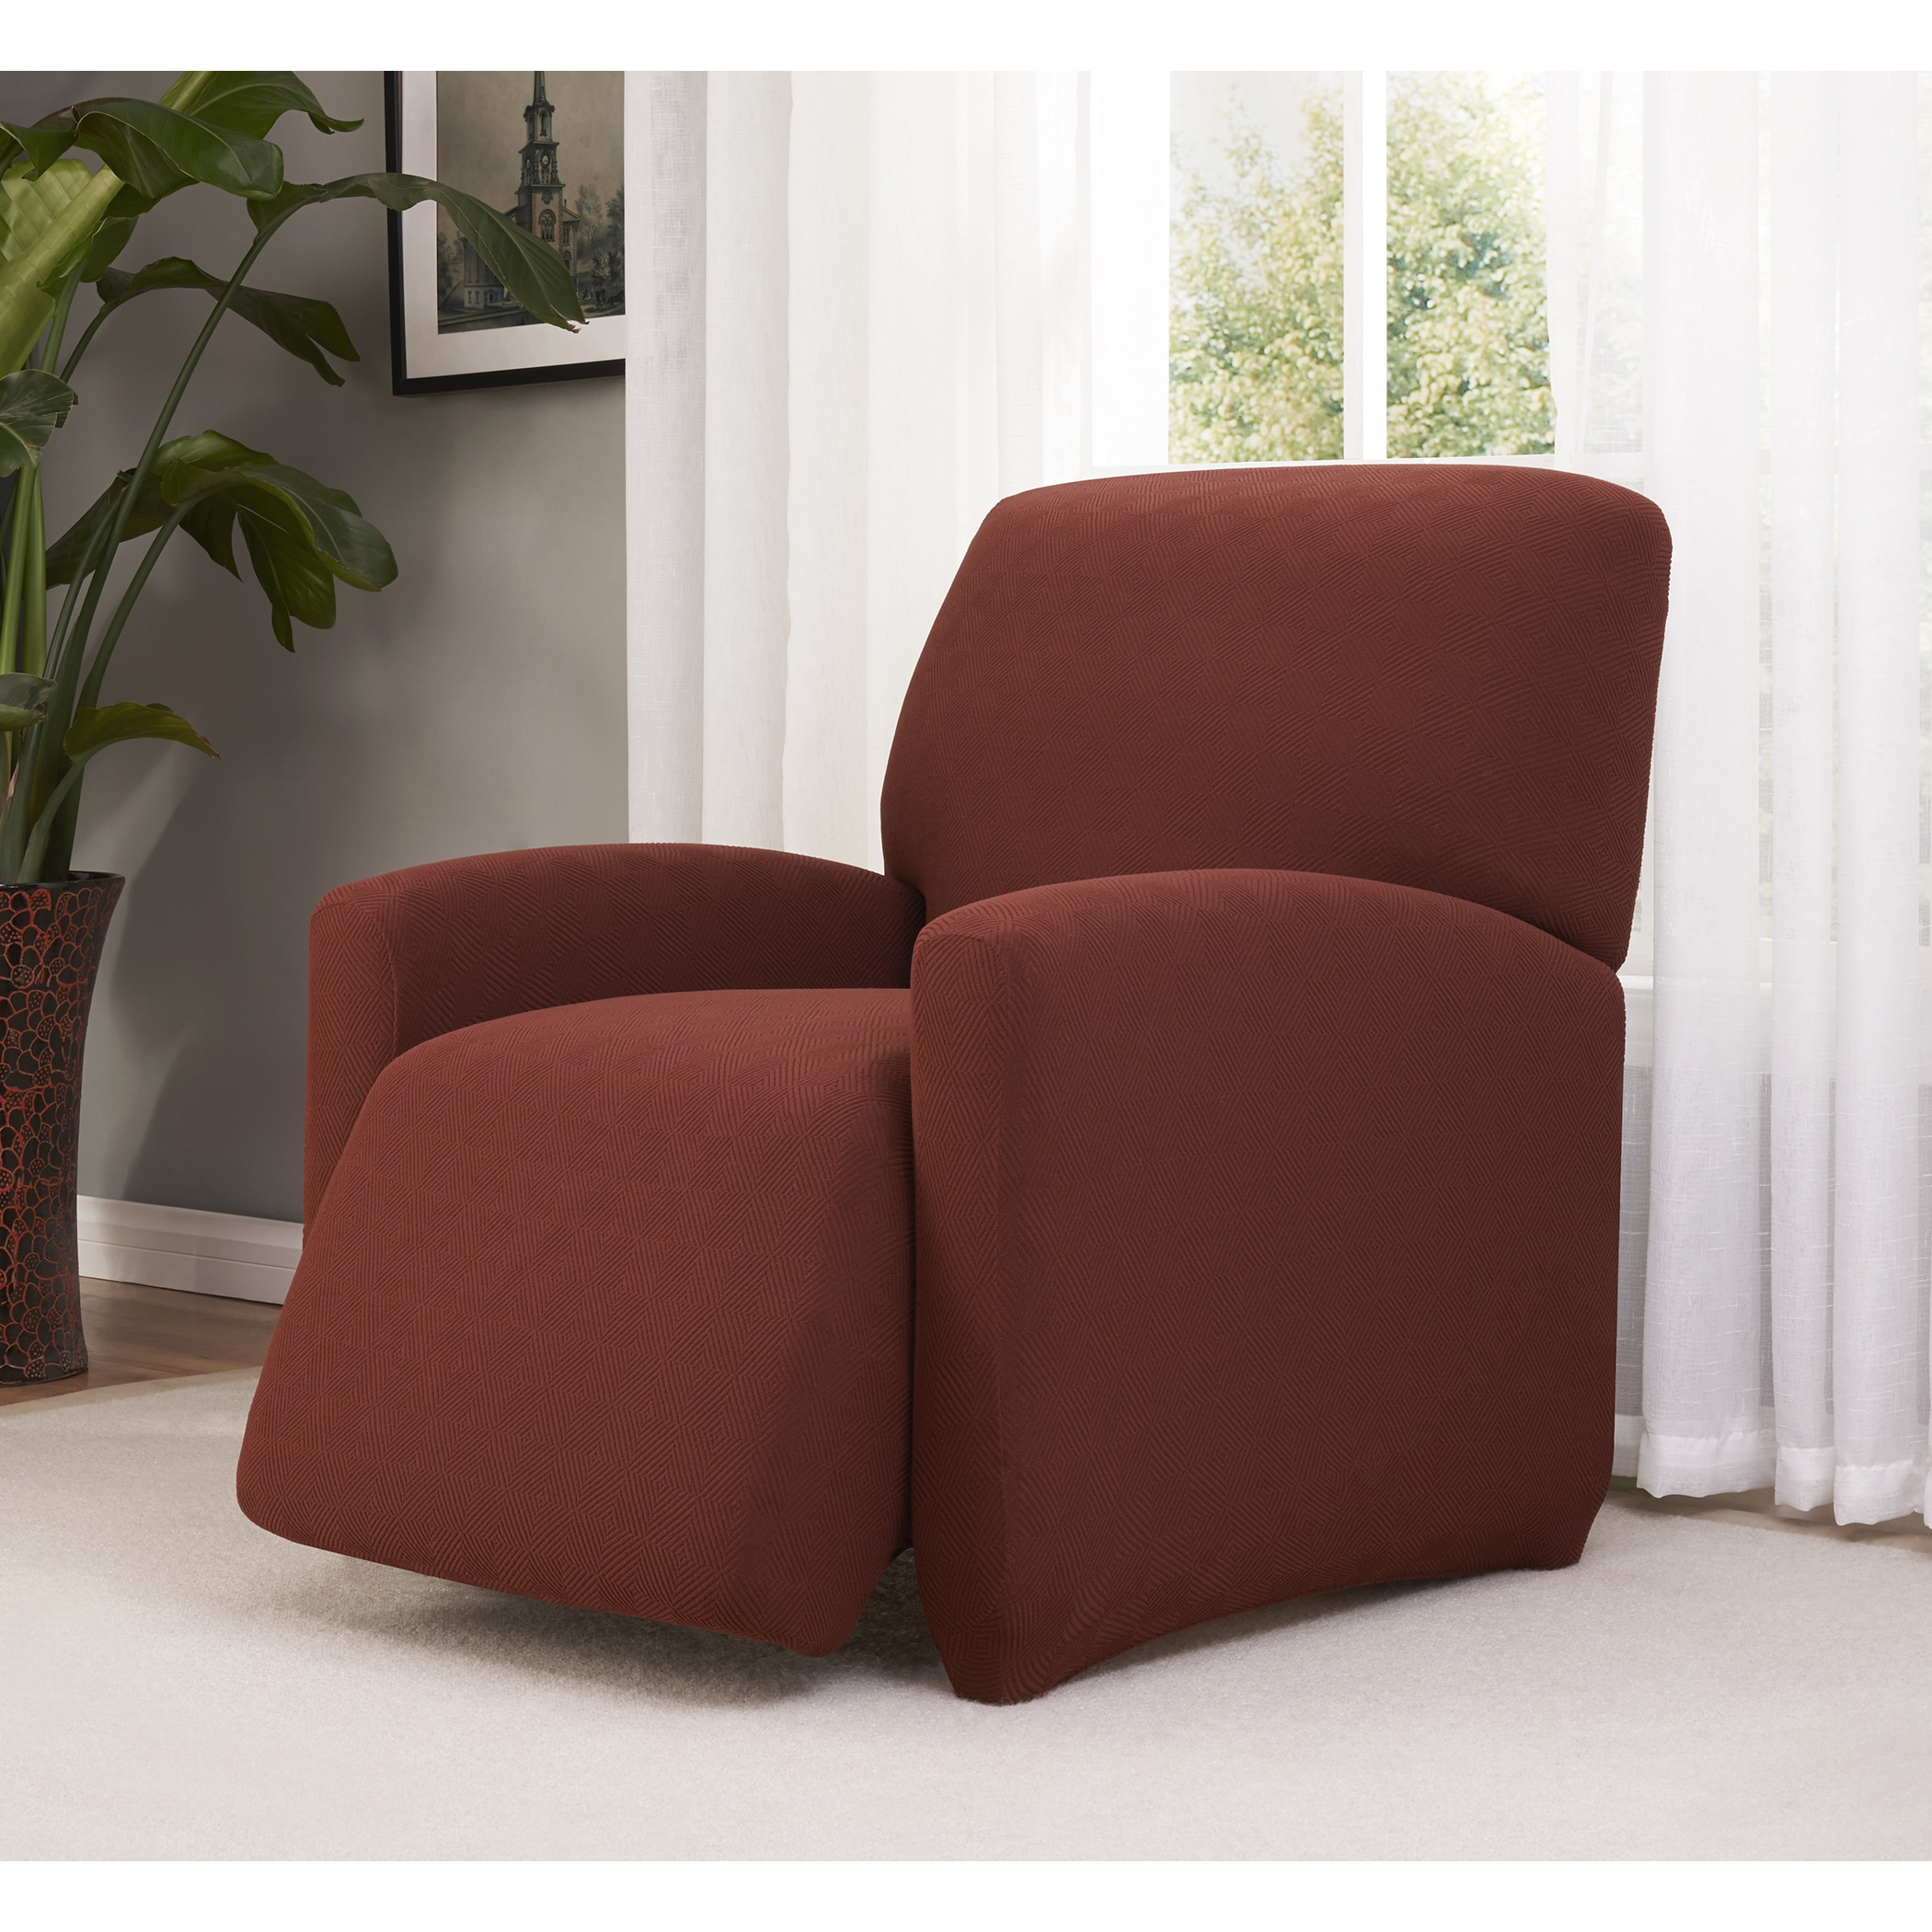 Madison Industries Checkerboard Recliner Stretch Slipcover